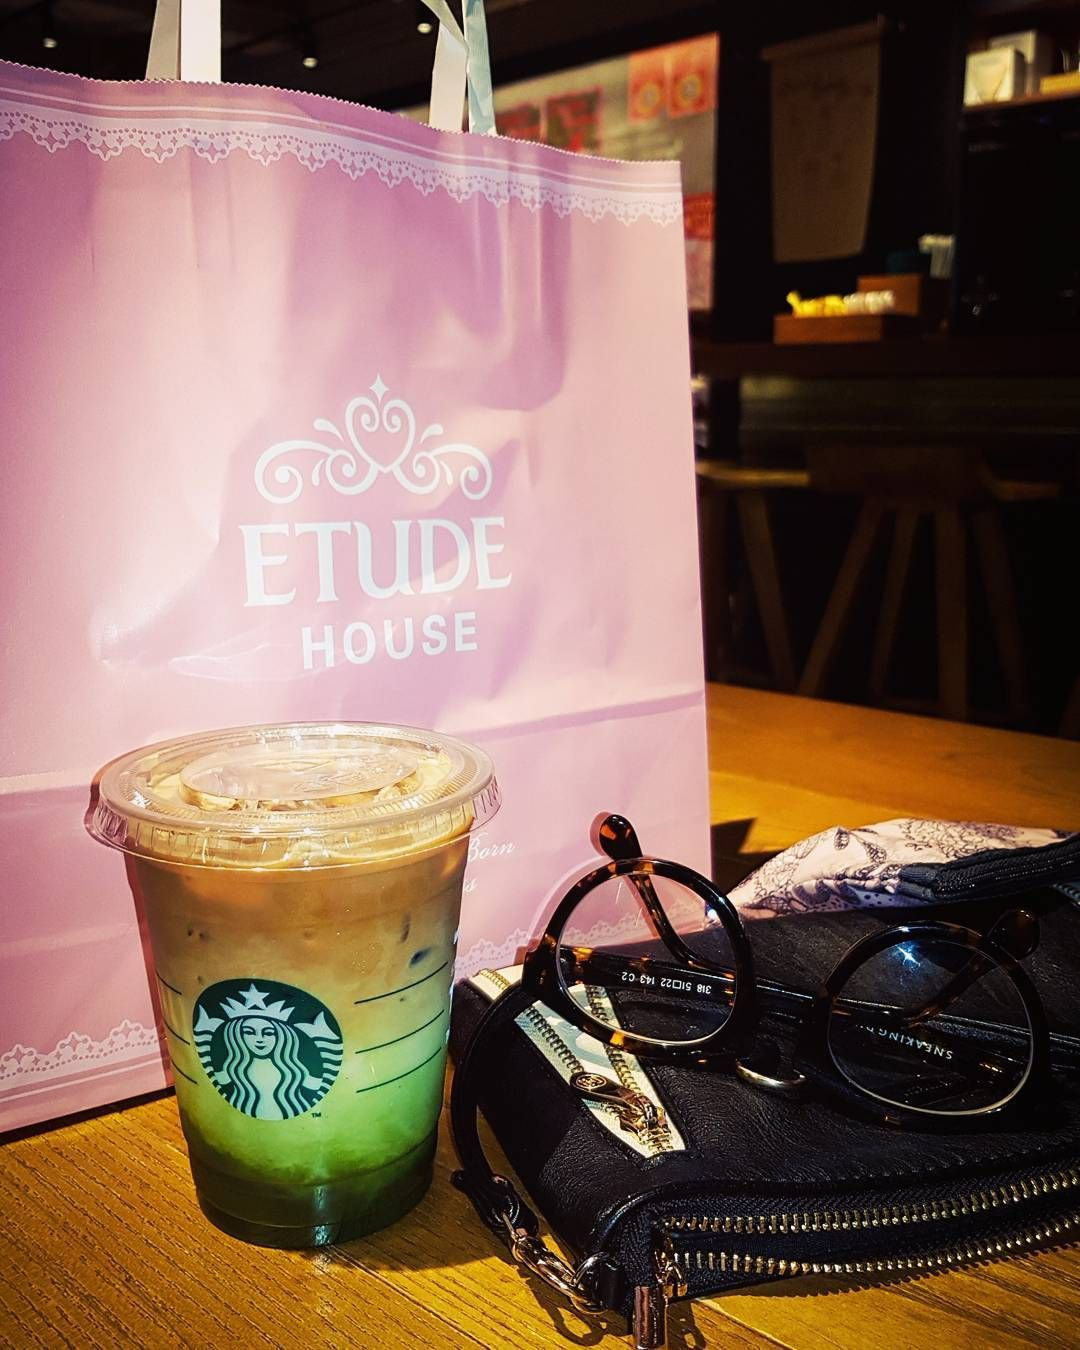 Asian Cosmetics Shopping With A Side Of Matcha Espresso Fusion Etudehouse Starbucks Matcha Coffee With Images Cosmetic Shop Louis Vuitton Bag Neverfull Insta Fashion